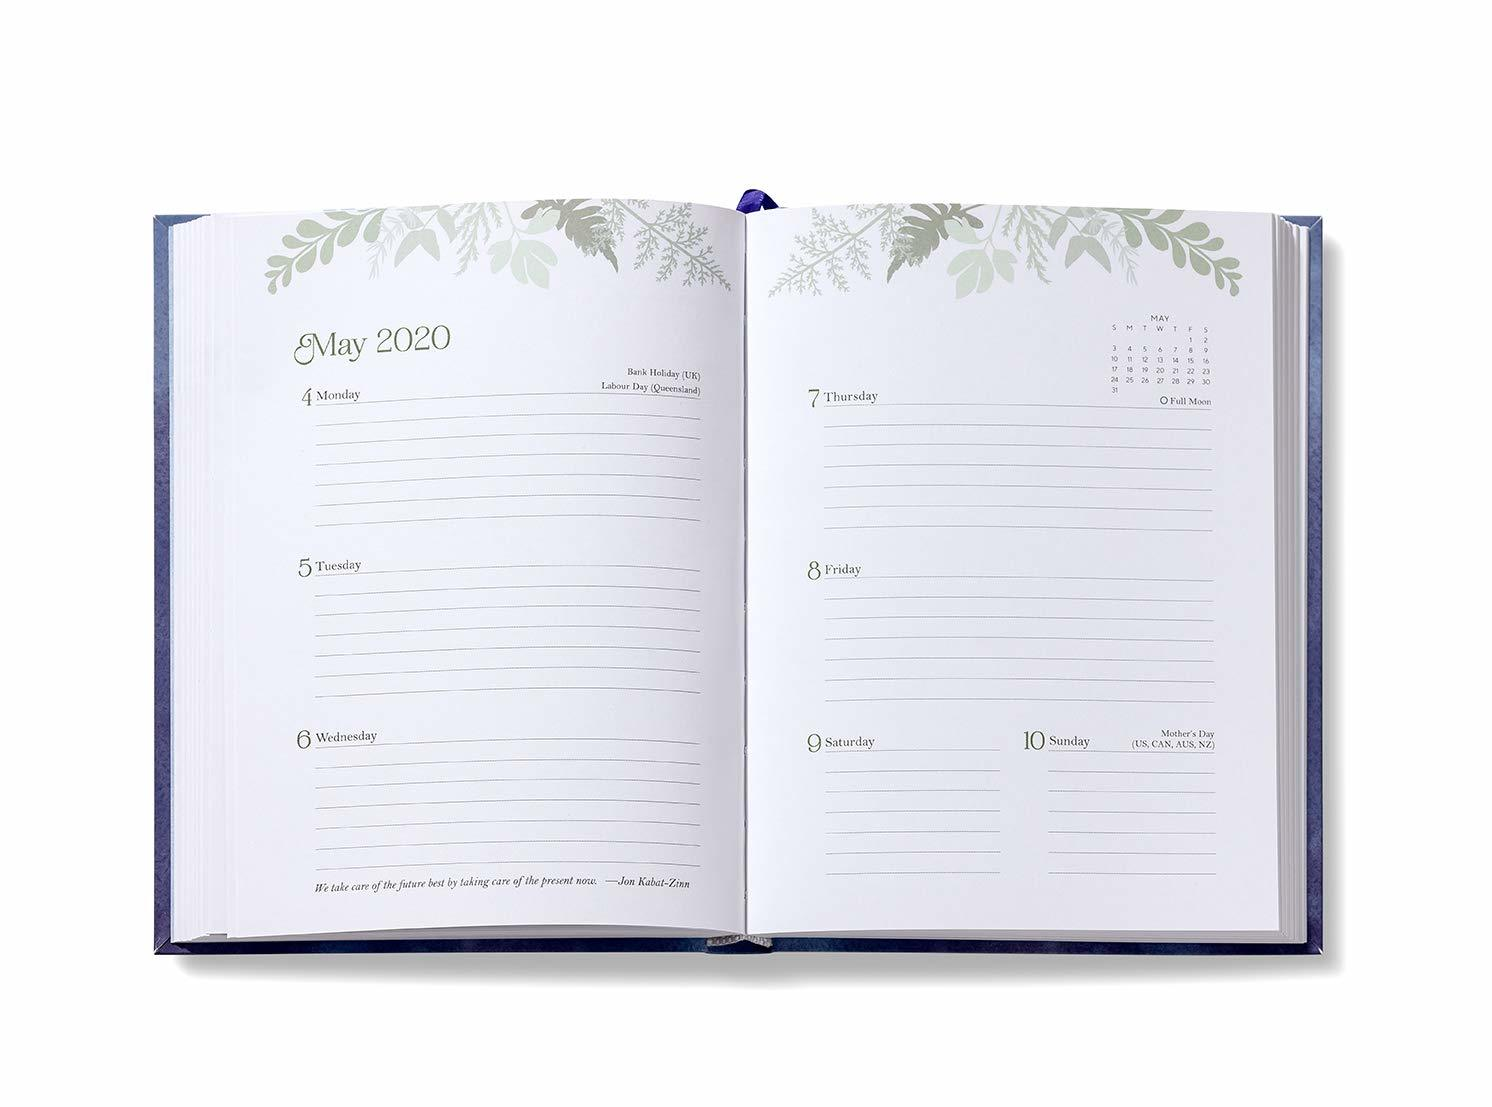 2020 High Note Mindfulness Sea Smoke in Silver 18-Month Weekly Planner image